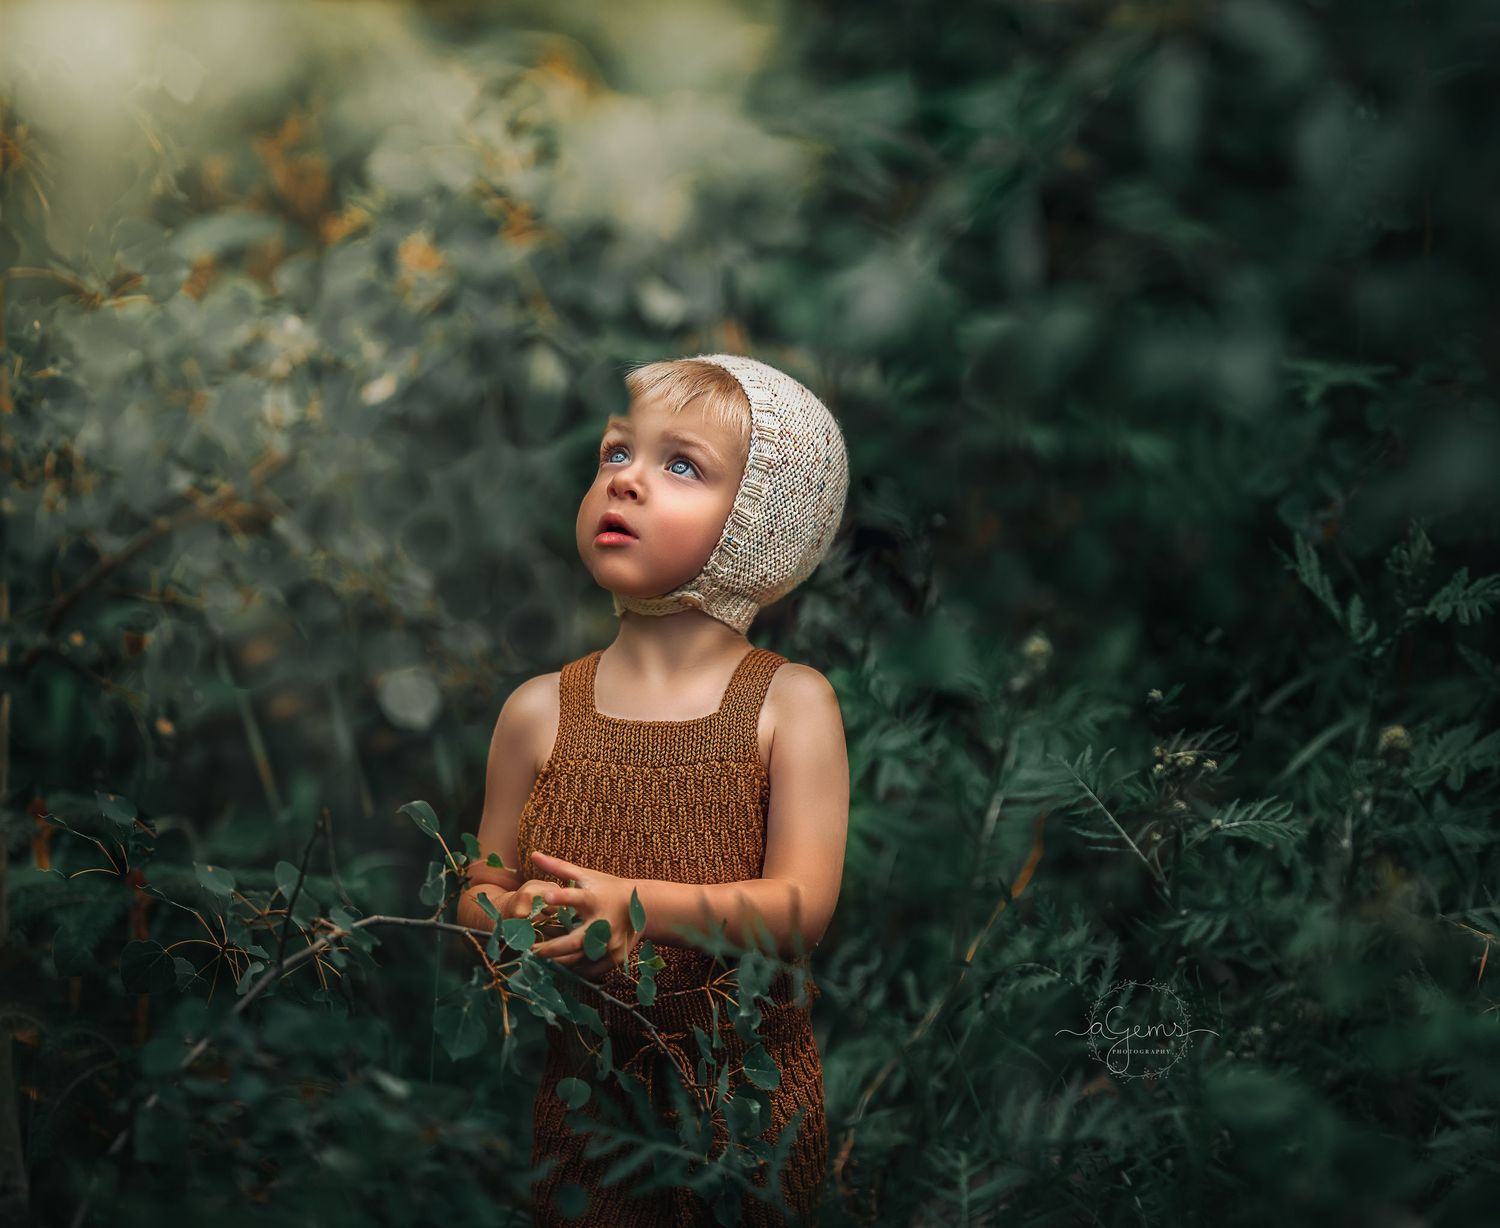 Young child in knit clothing and adorable hand knit bonnet looks at foliage in outdoor green forest session